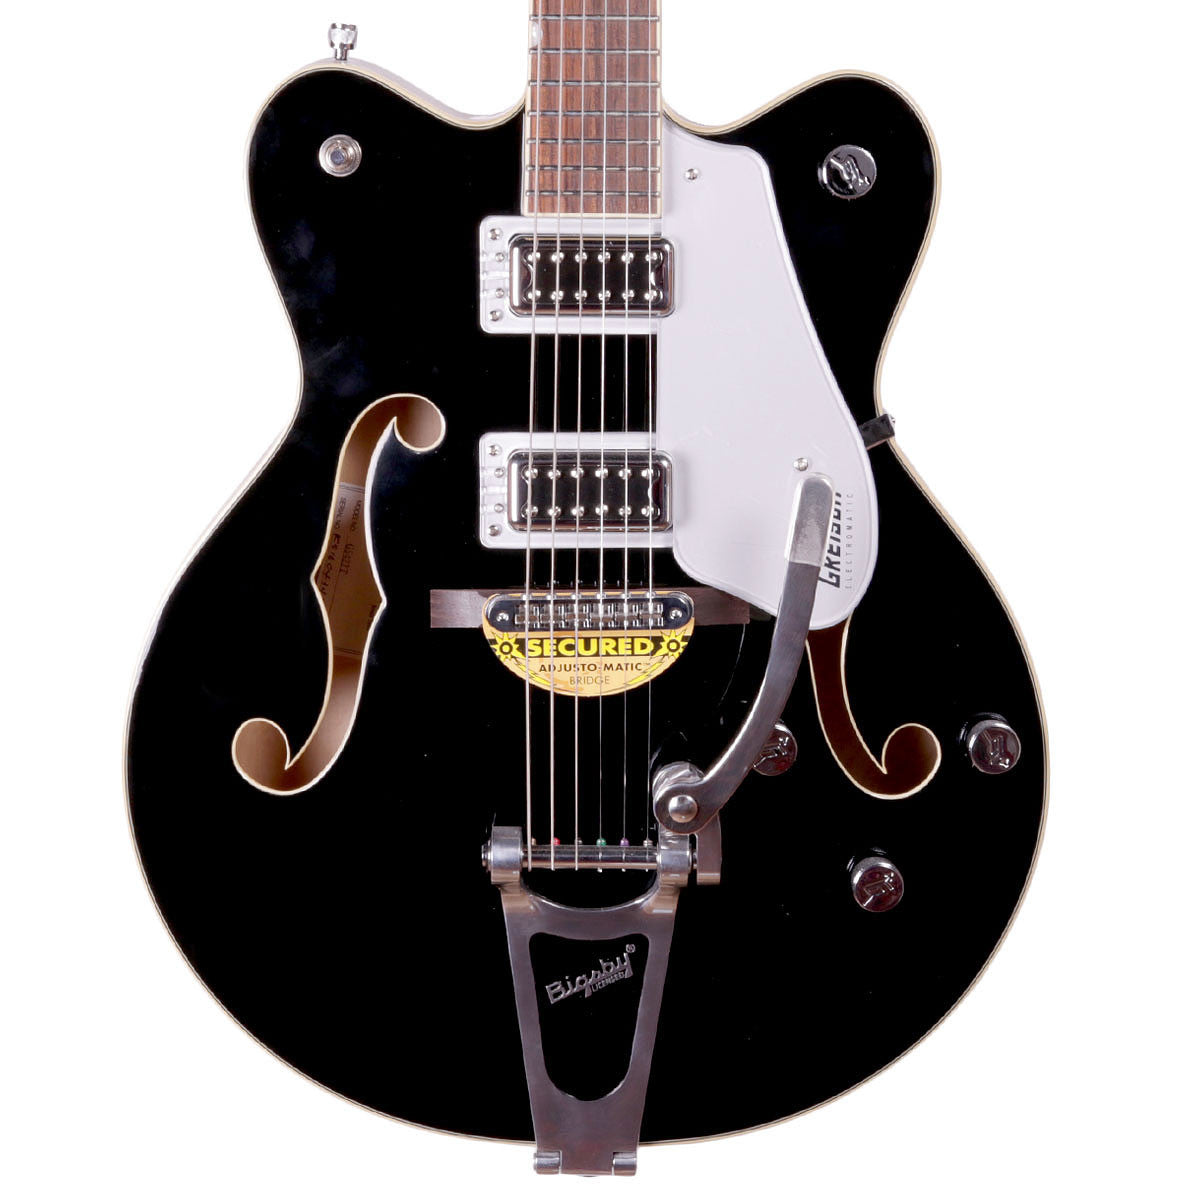 Gretsch G5422T 2016 Electromatic Hollowbody w/Bigsby - Black - Vintage Guitar Boutique - 1